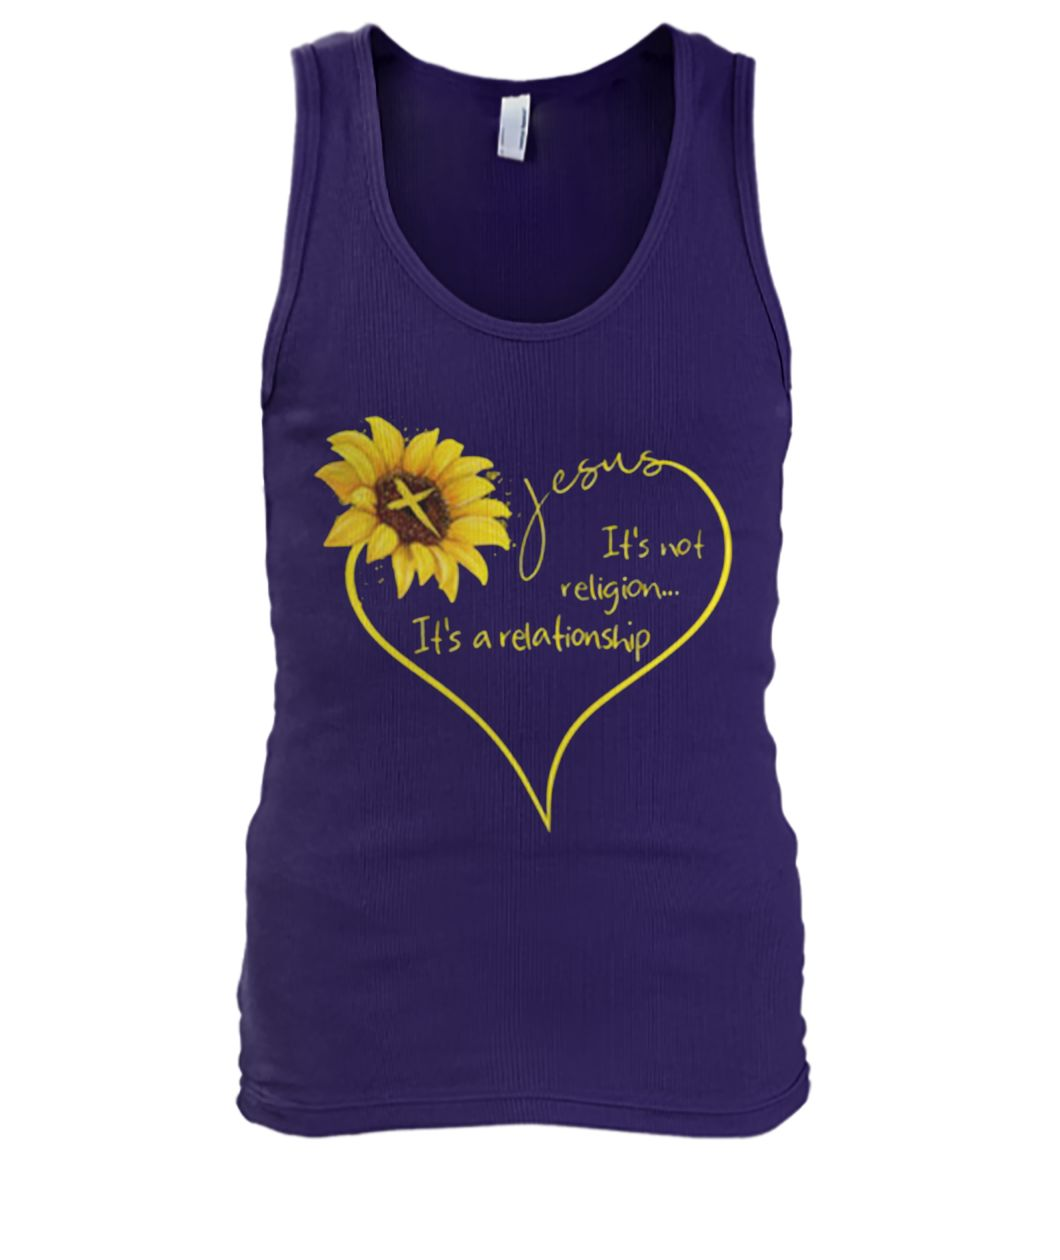 Sunflower Jesus it's not religion it's a relationship men's tank top